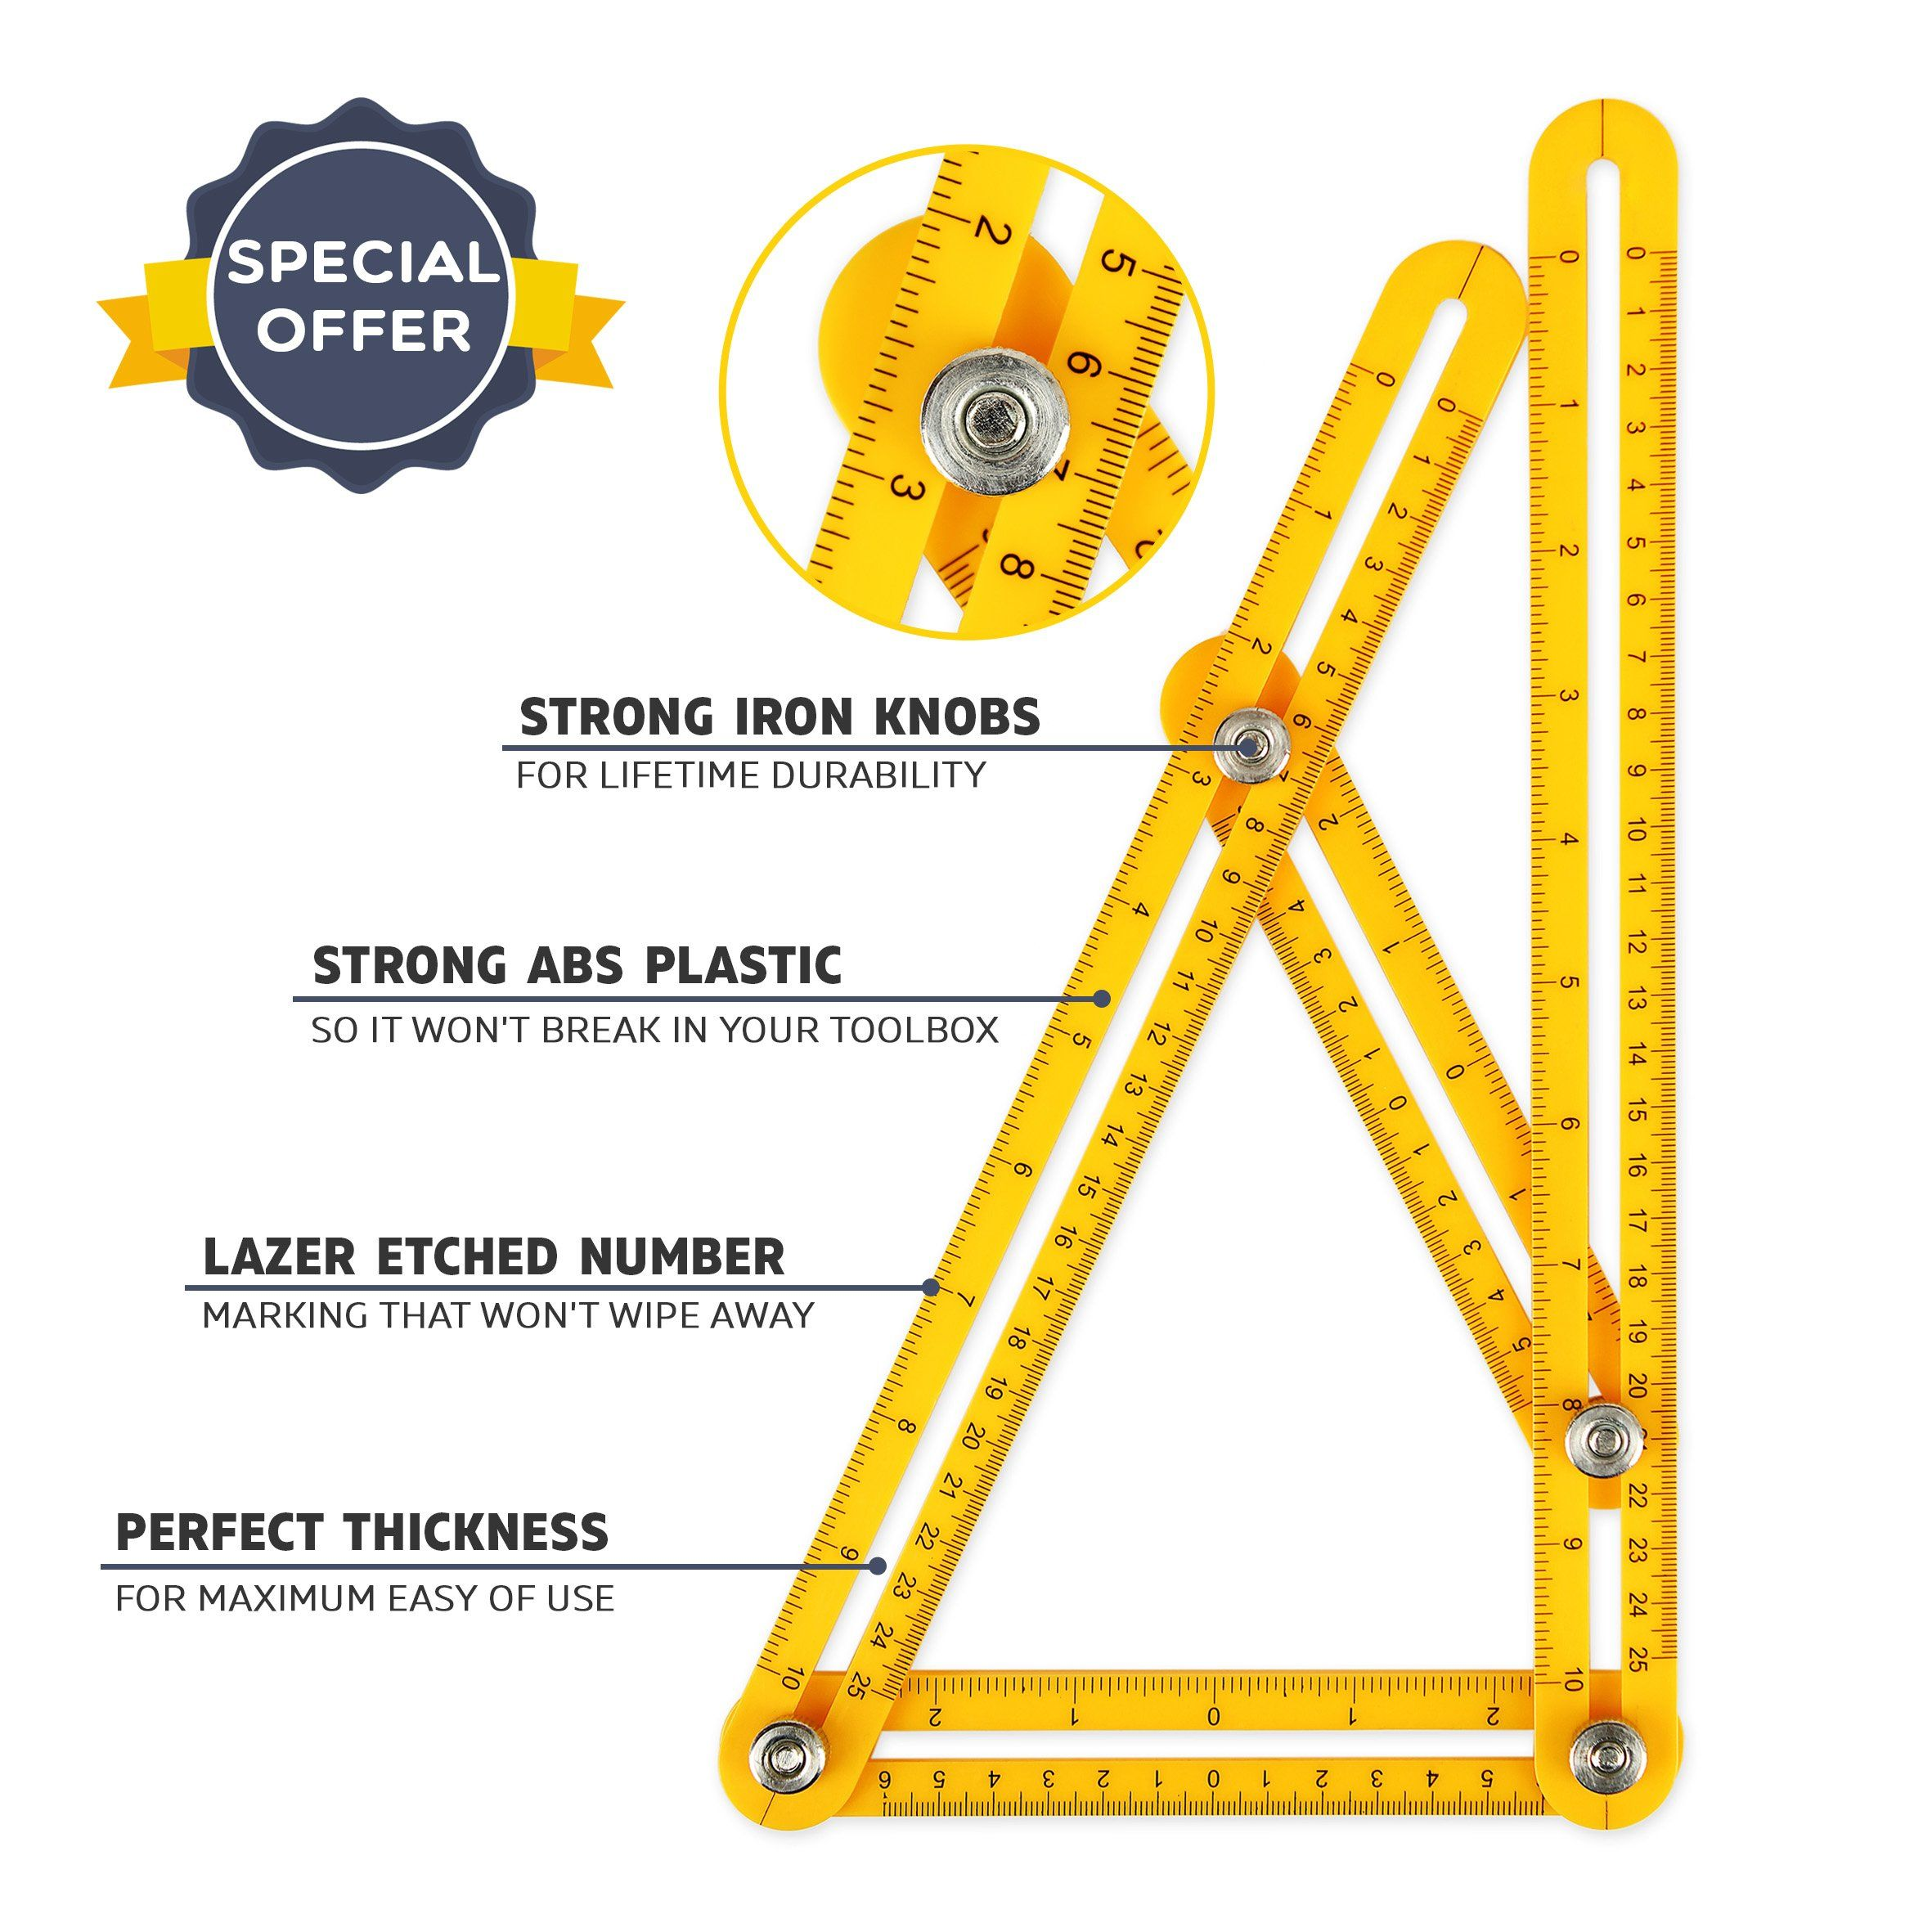 Angle Sizer Multi Angle Measuring Template Tool With Unique Strong Metal Bolts And Screws Use In Carpentry Building Desi Woodworking Woodworking Tools Tool Box